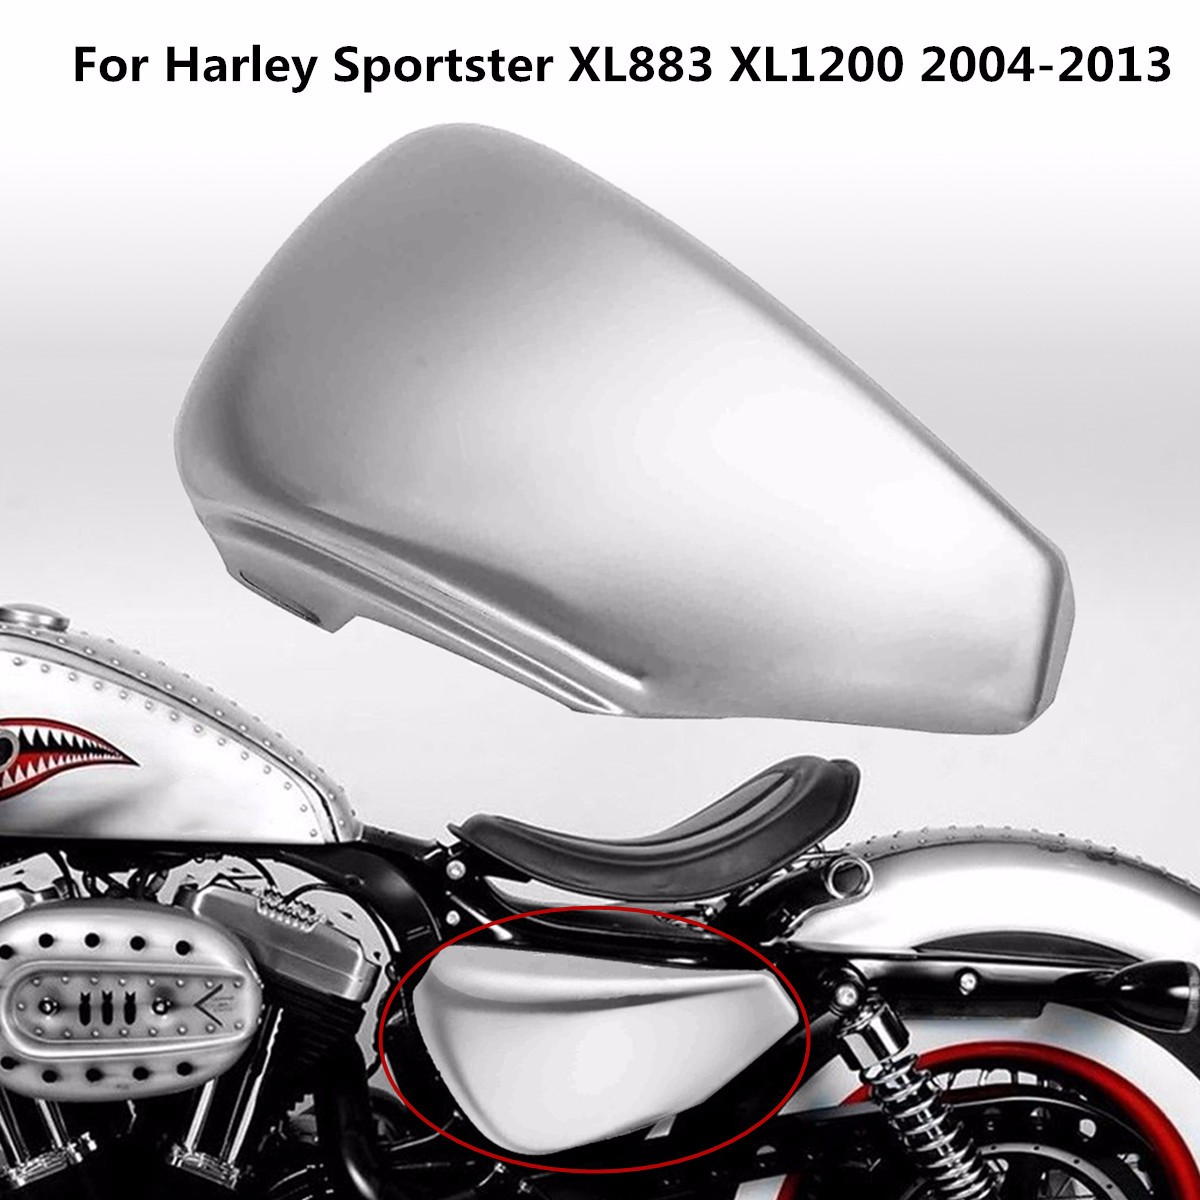 Autoleader Iron Silver Motorcycle Left Side Battery Cover for Harley for Sportster XL883 XL1200 2004-2013 34.5?x?17.5?x?6cm motorcycle cnc aluminum headlight grill cover for harley sportster xl883 xl1200 2004 2014